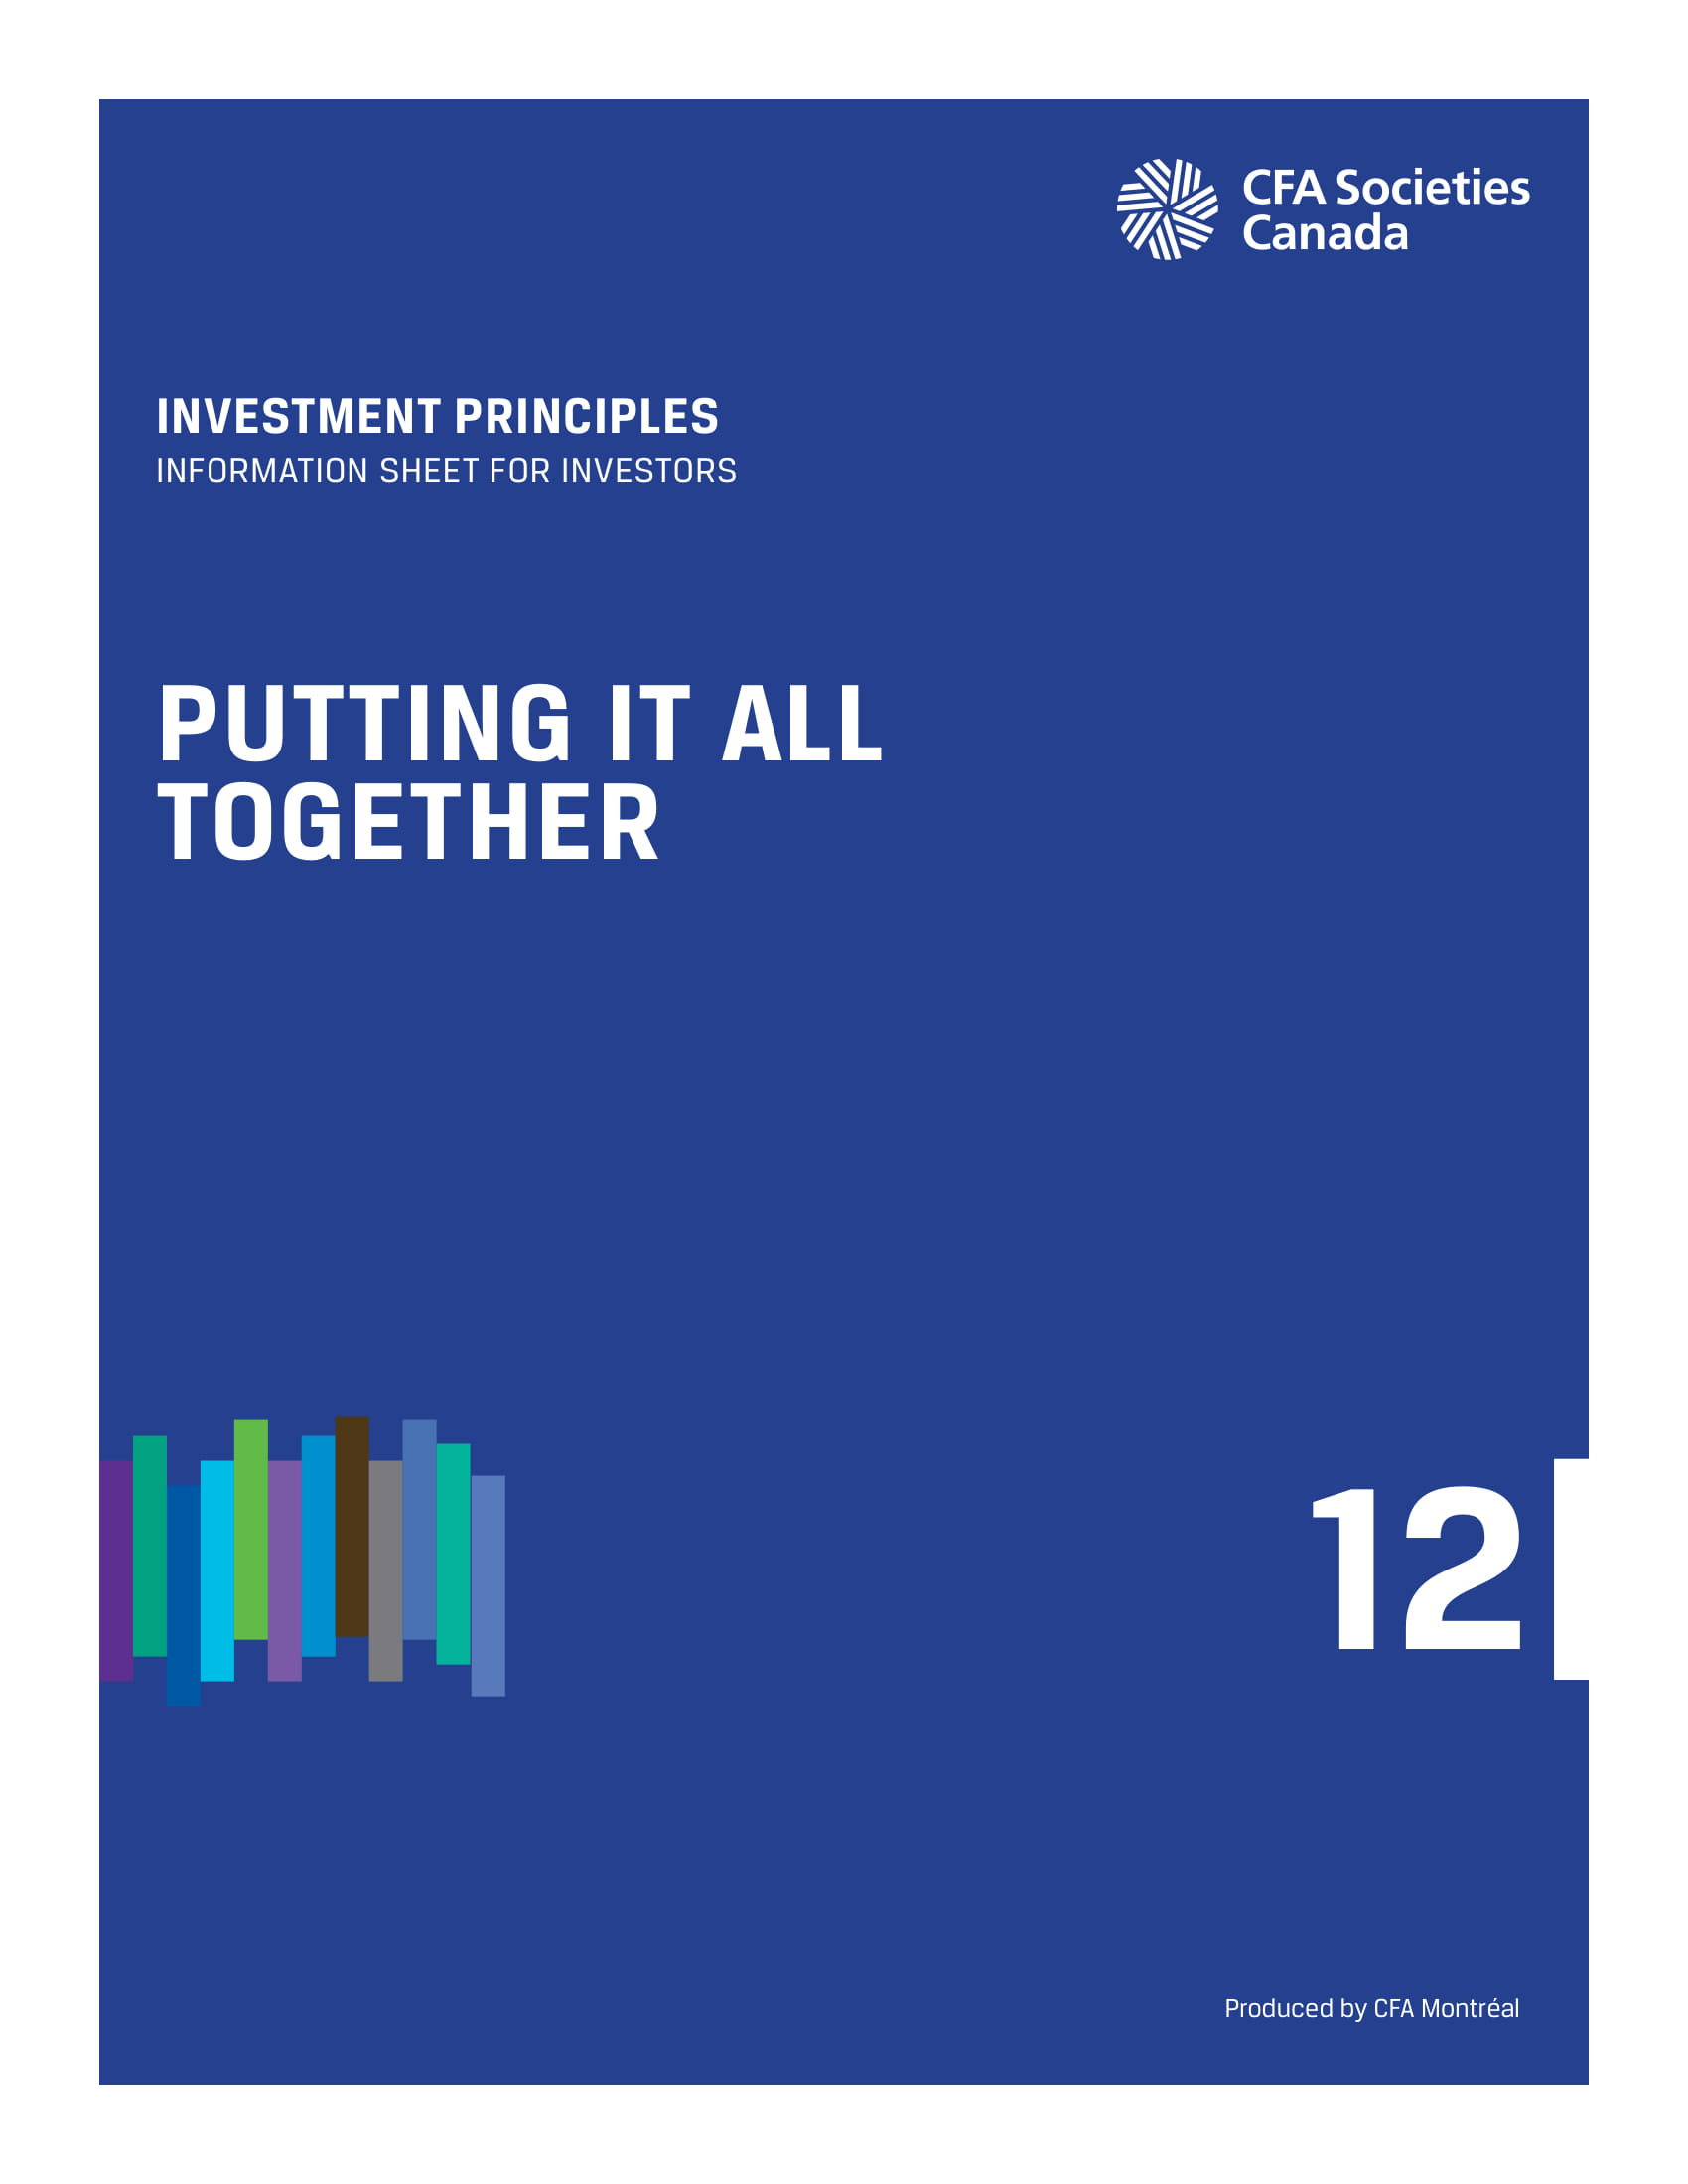 12. Investors - Putting It All Together_p1-1-1.jpg